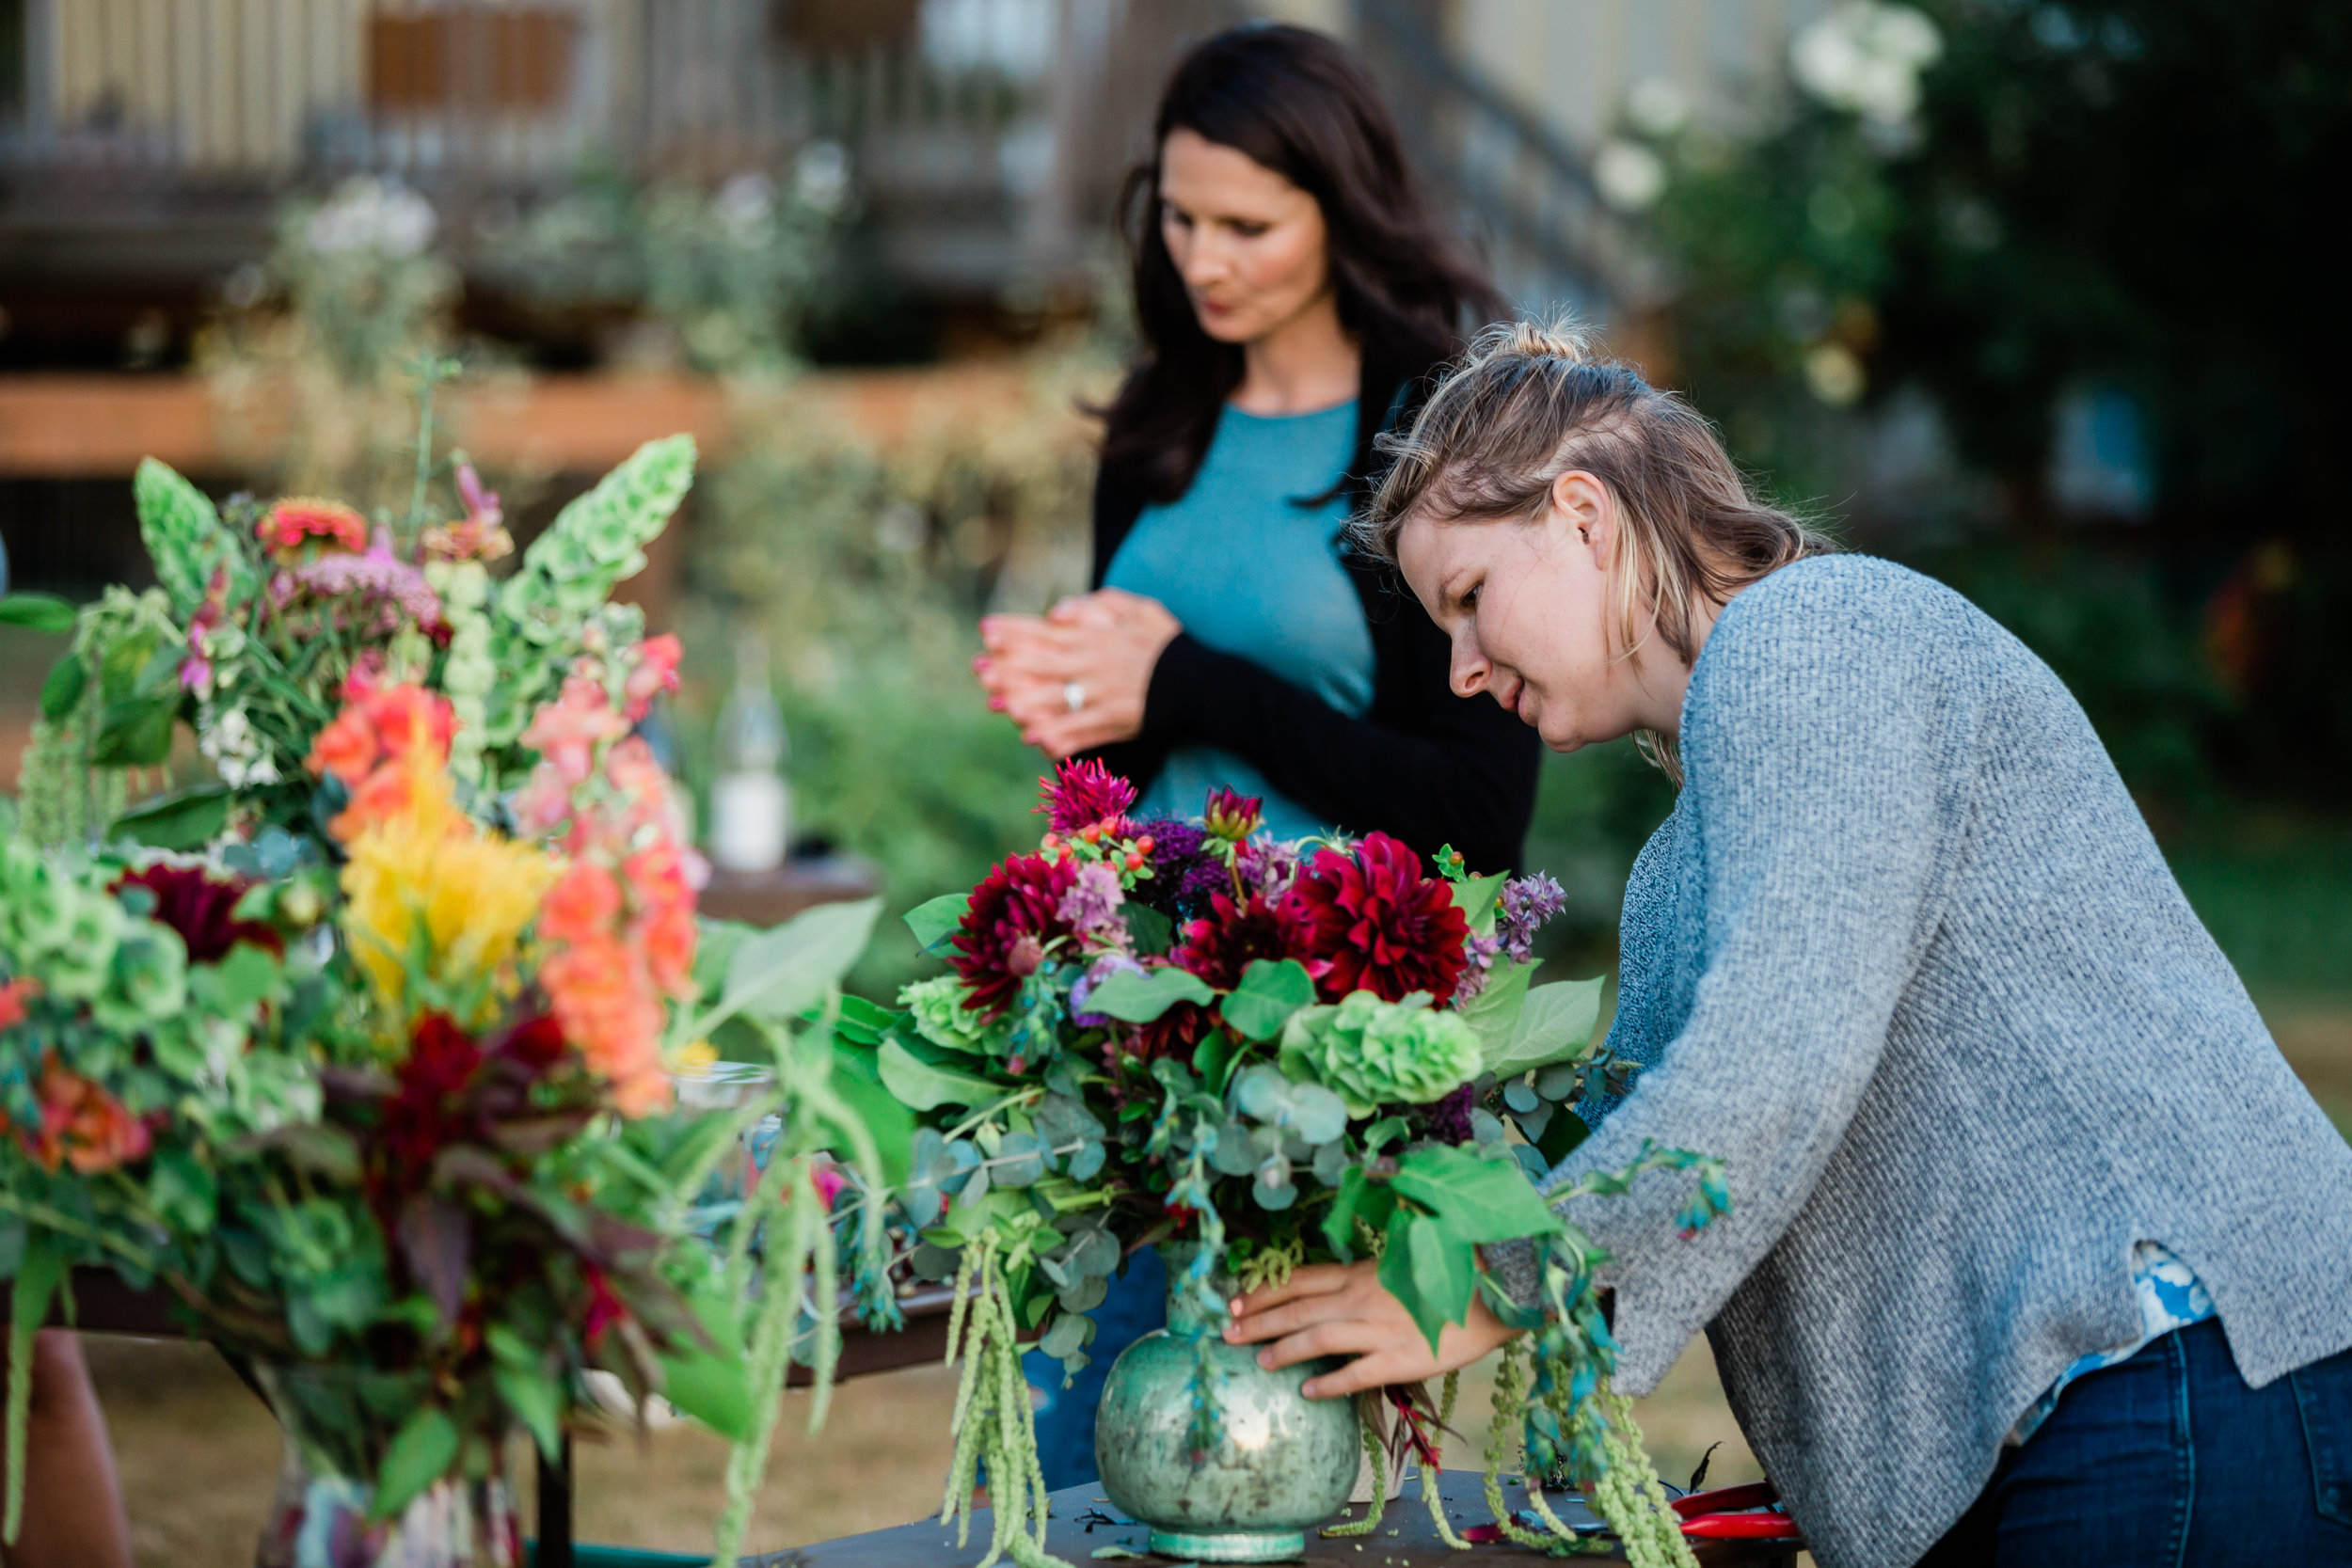 Flower Socials - Are you interested in gathering flowers with your friends? We offer flower gathering socials at our farm where you can come out and learn  about floral arrangement with your pals.